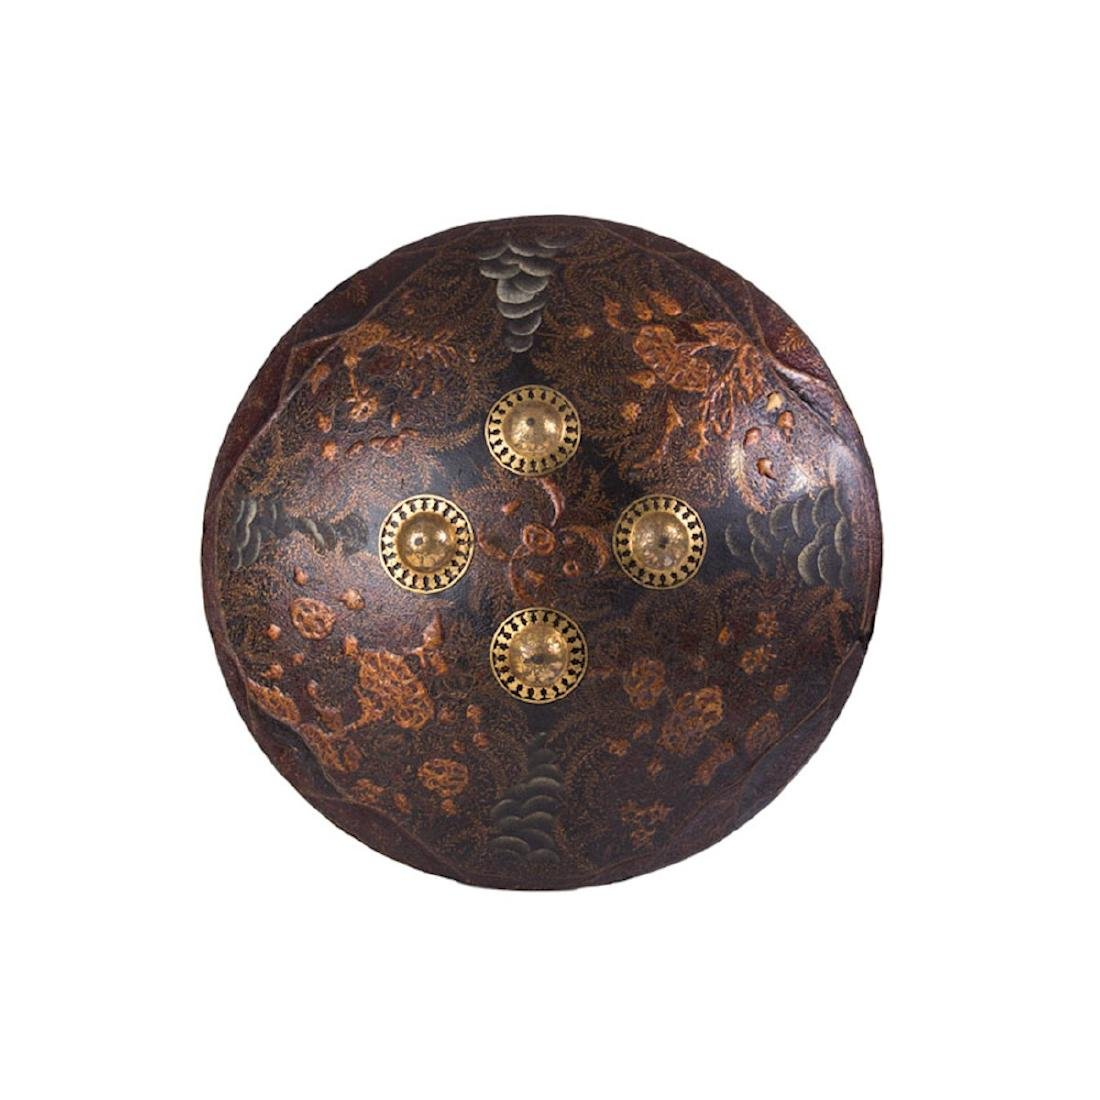 INDIAN DHAL SHIELD, 19TH C.